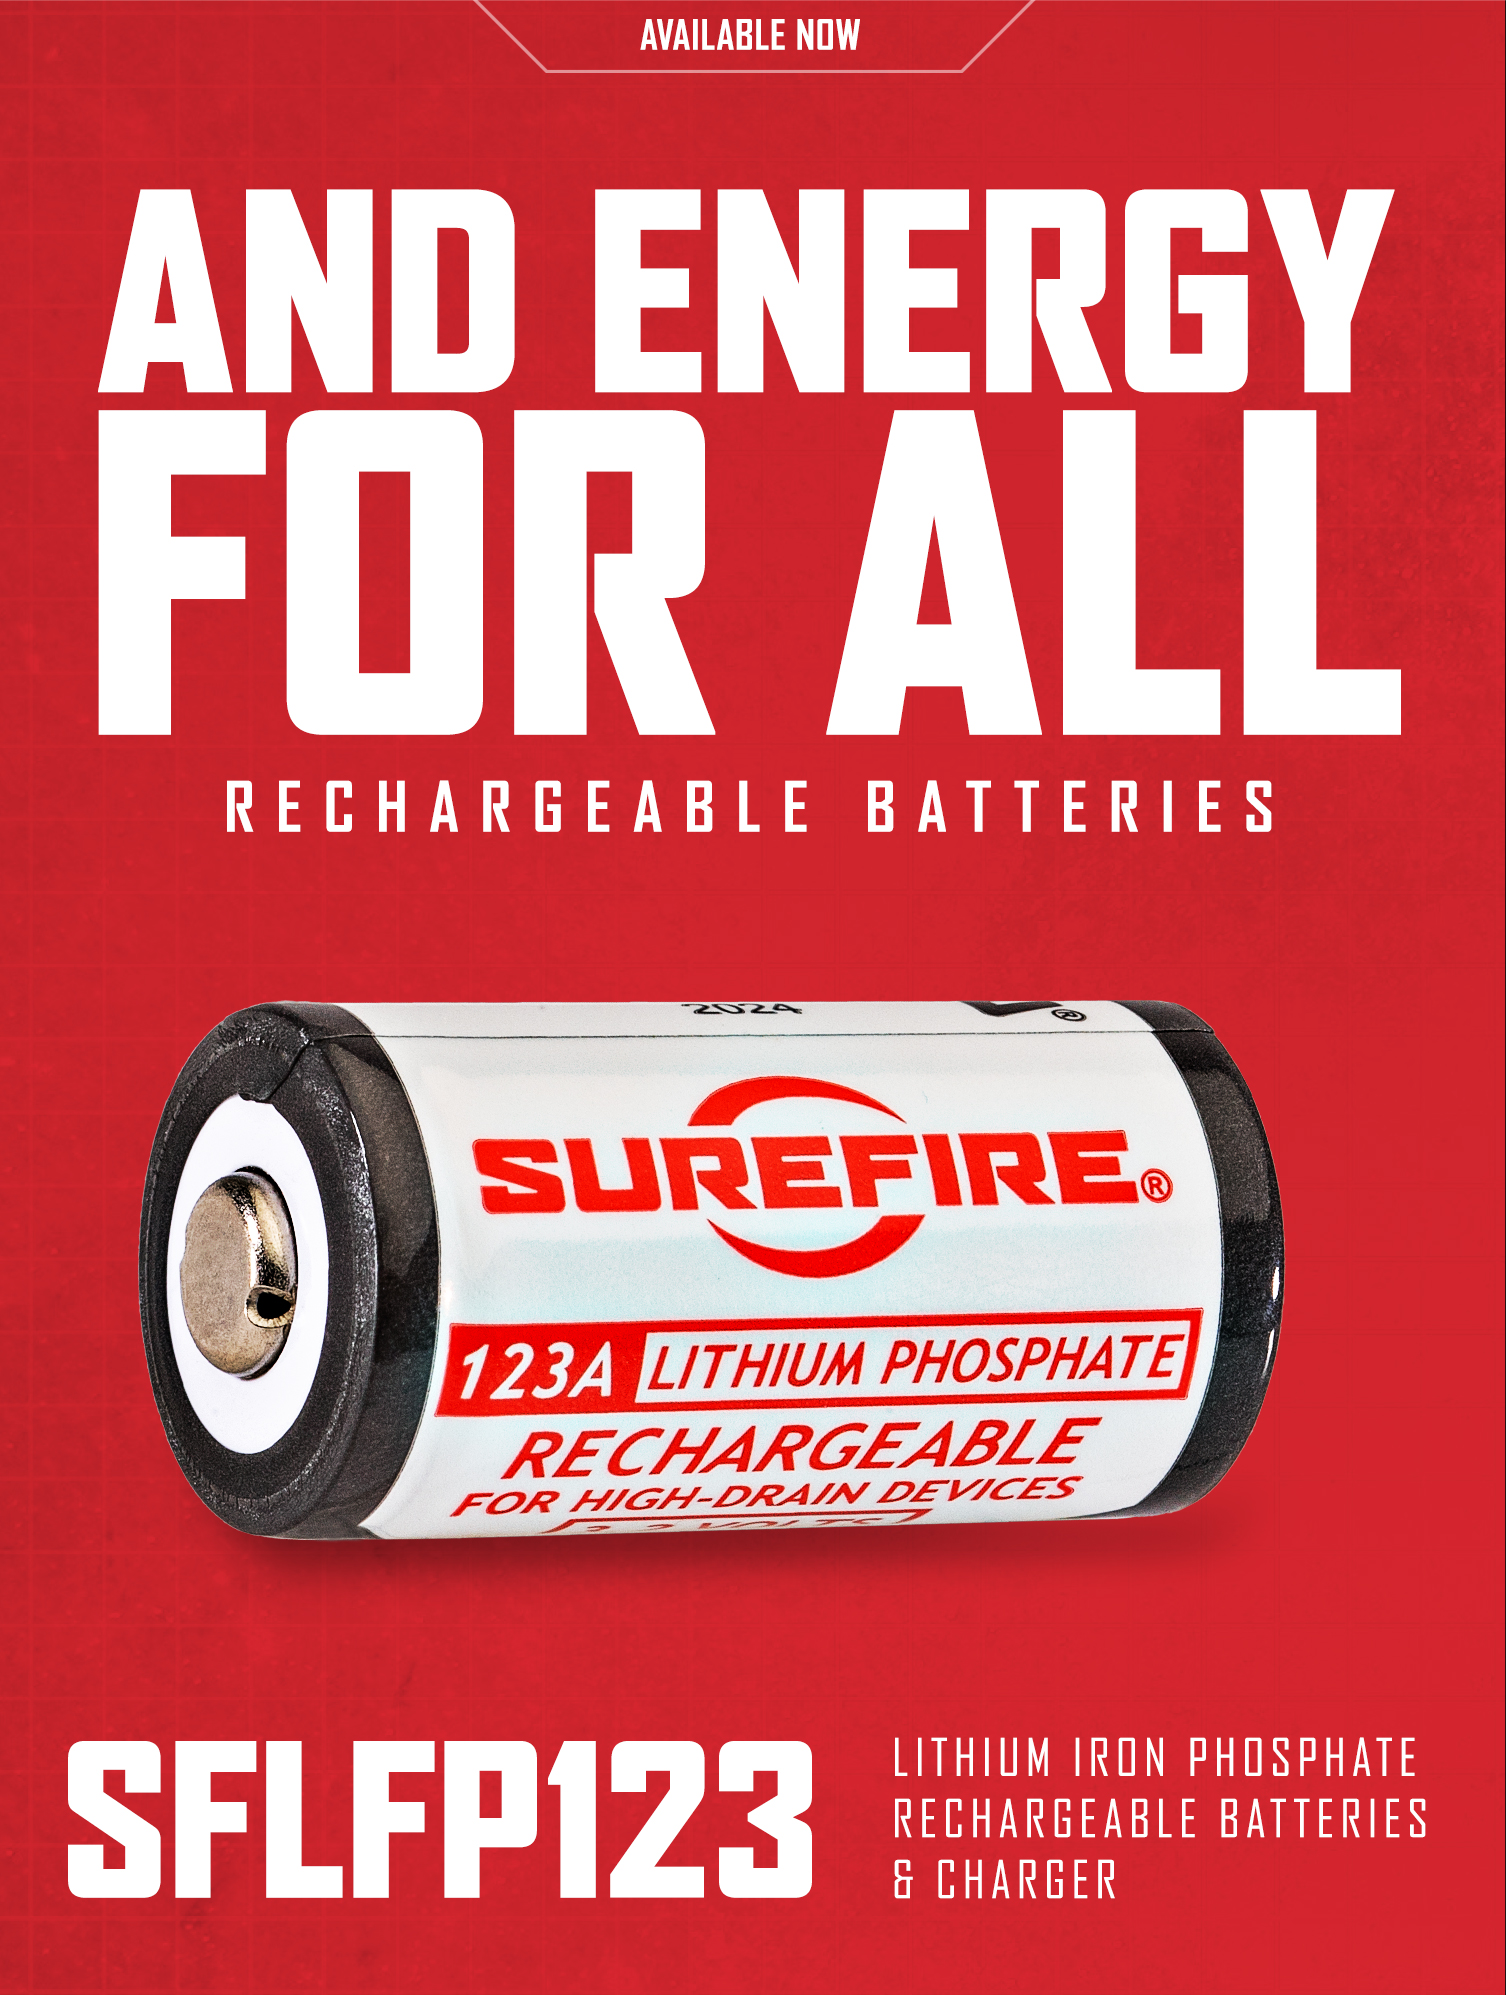 SureFire SFLFP Rechargeable Batteries